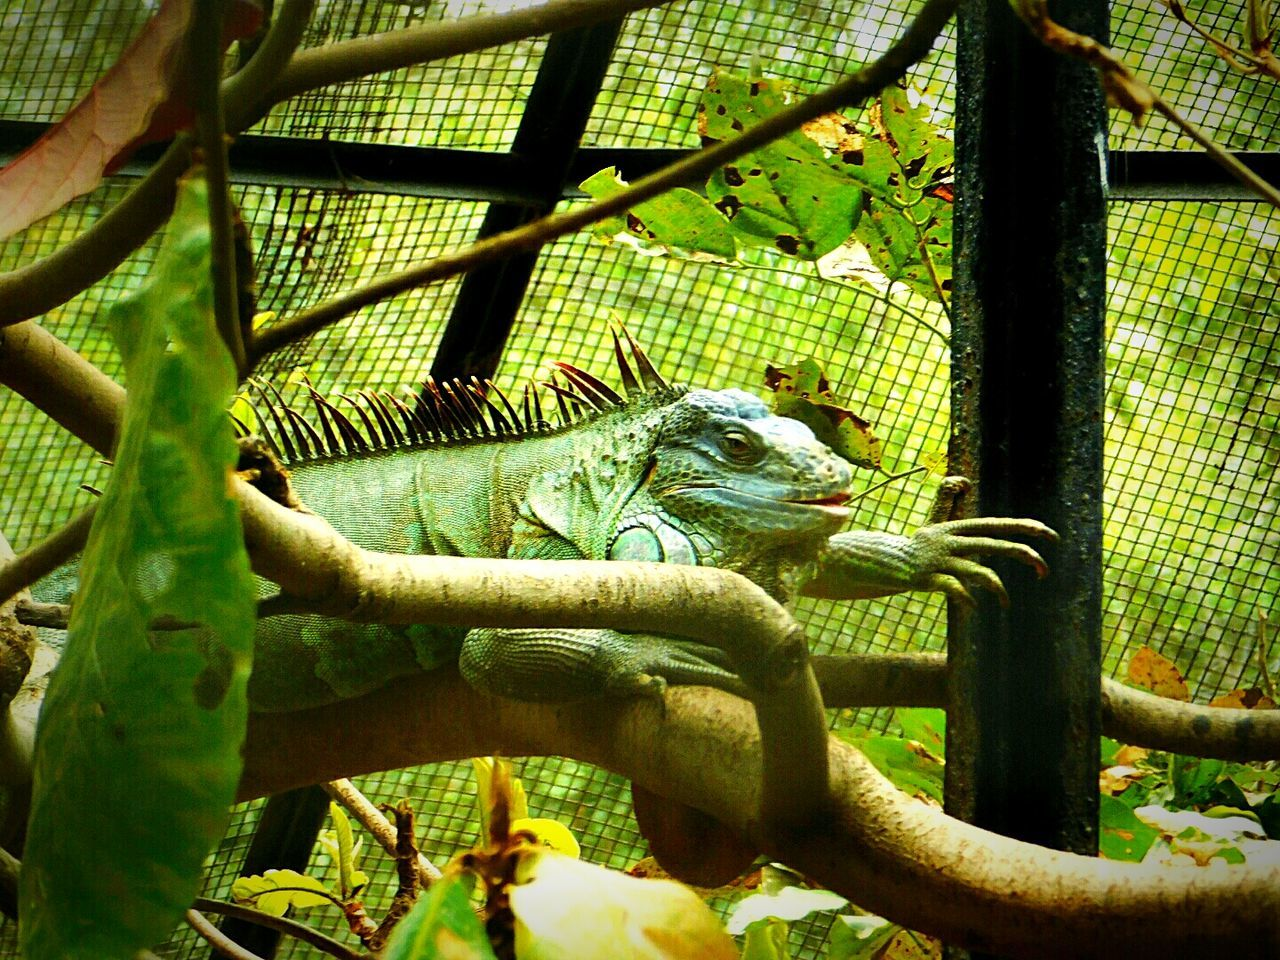 Reptile Chameleon Tree One Animal Giant Chameleon Resting Tree Nature Leaf Chameleon On A Tree Close-up Looking At Camera Alone Sadness😢 Looking For Freedom Wildlife Photography